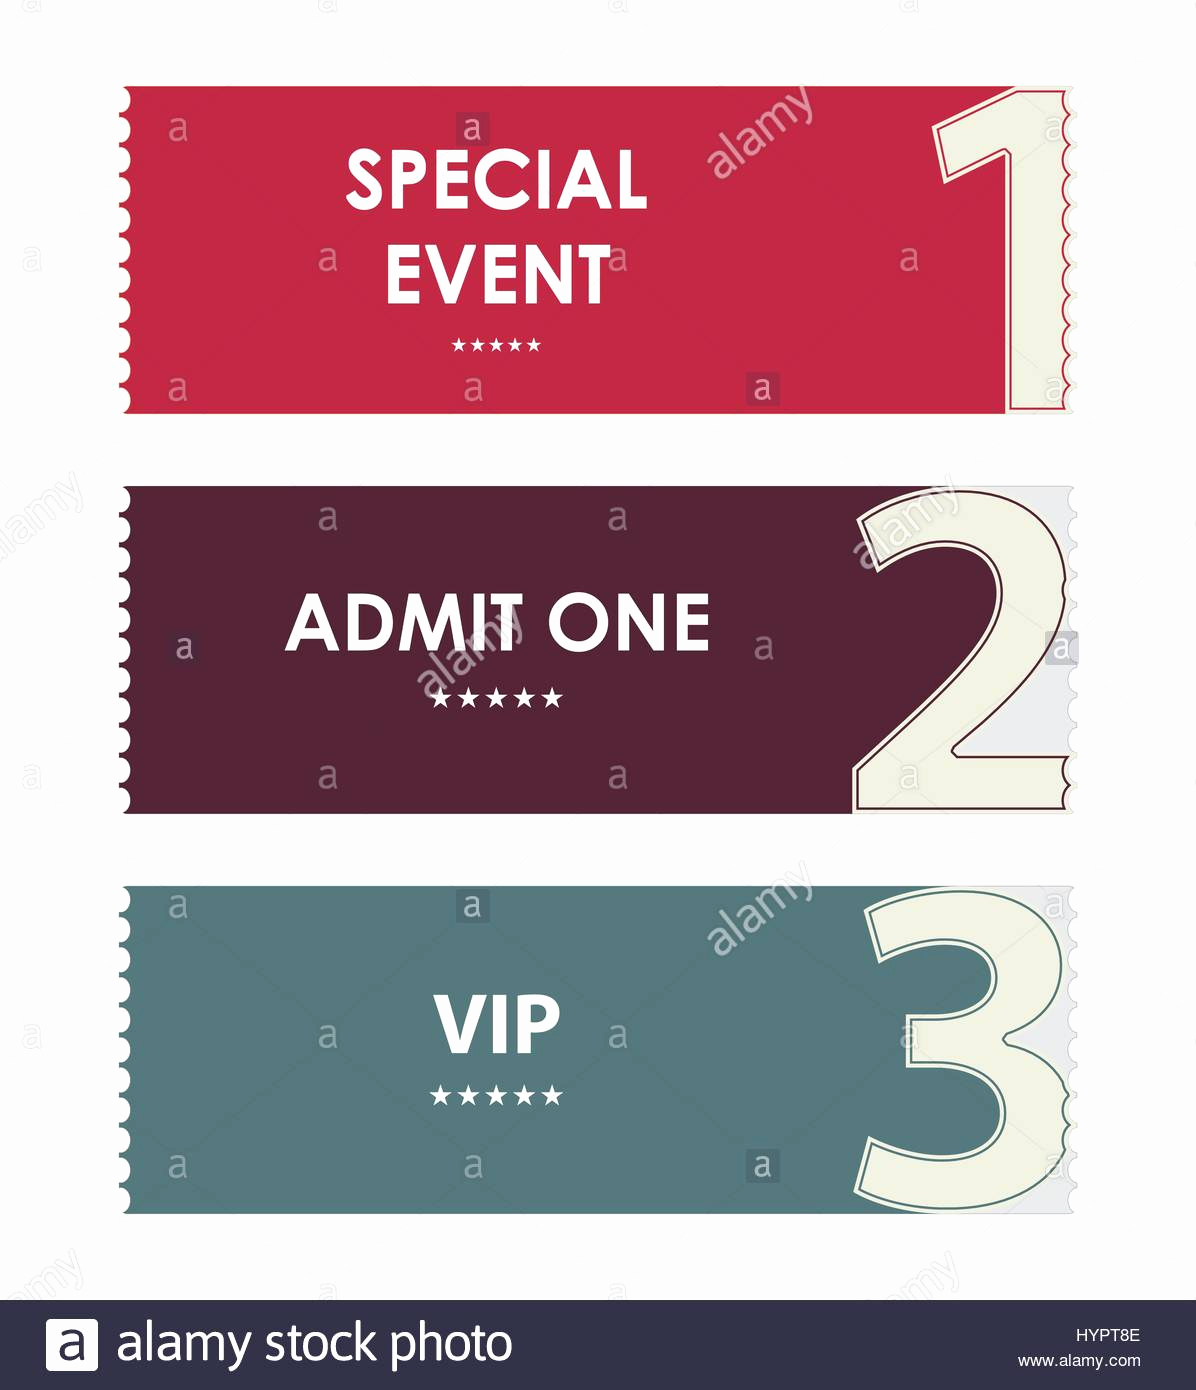 Admit One Ticket Template Best Of Tickets sold Here Cut Out Stock & Alamy